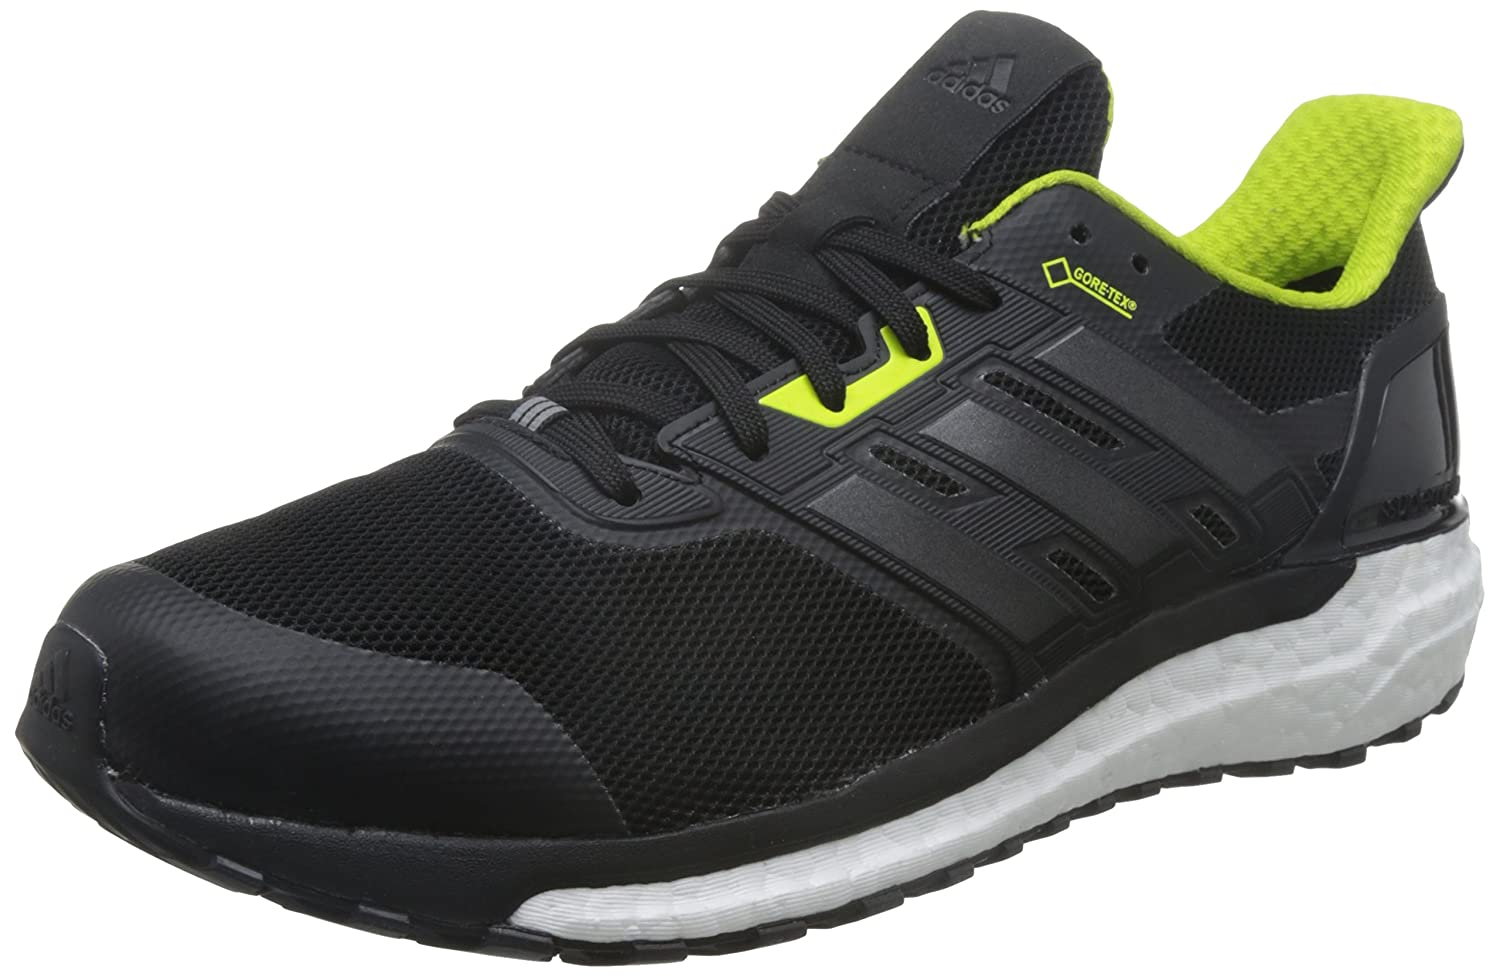 b538754e4 adidas Men  s Supernova GTX M Running Shoes  Amazon.co.uk  Shoes   Bags